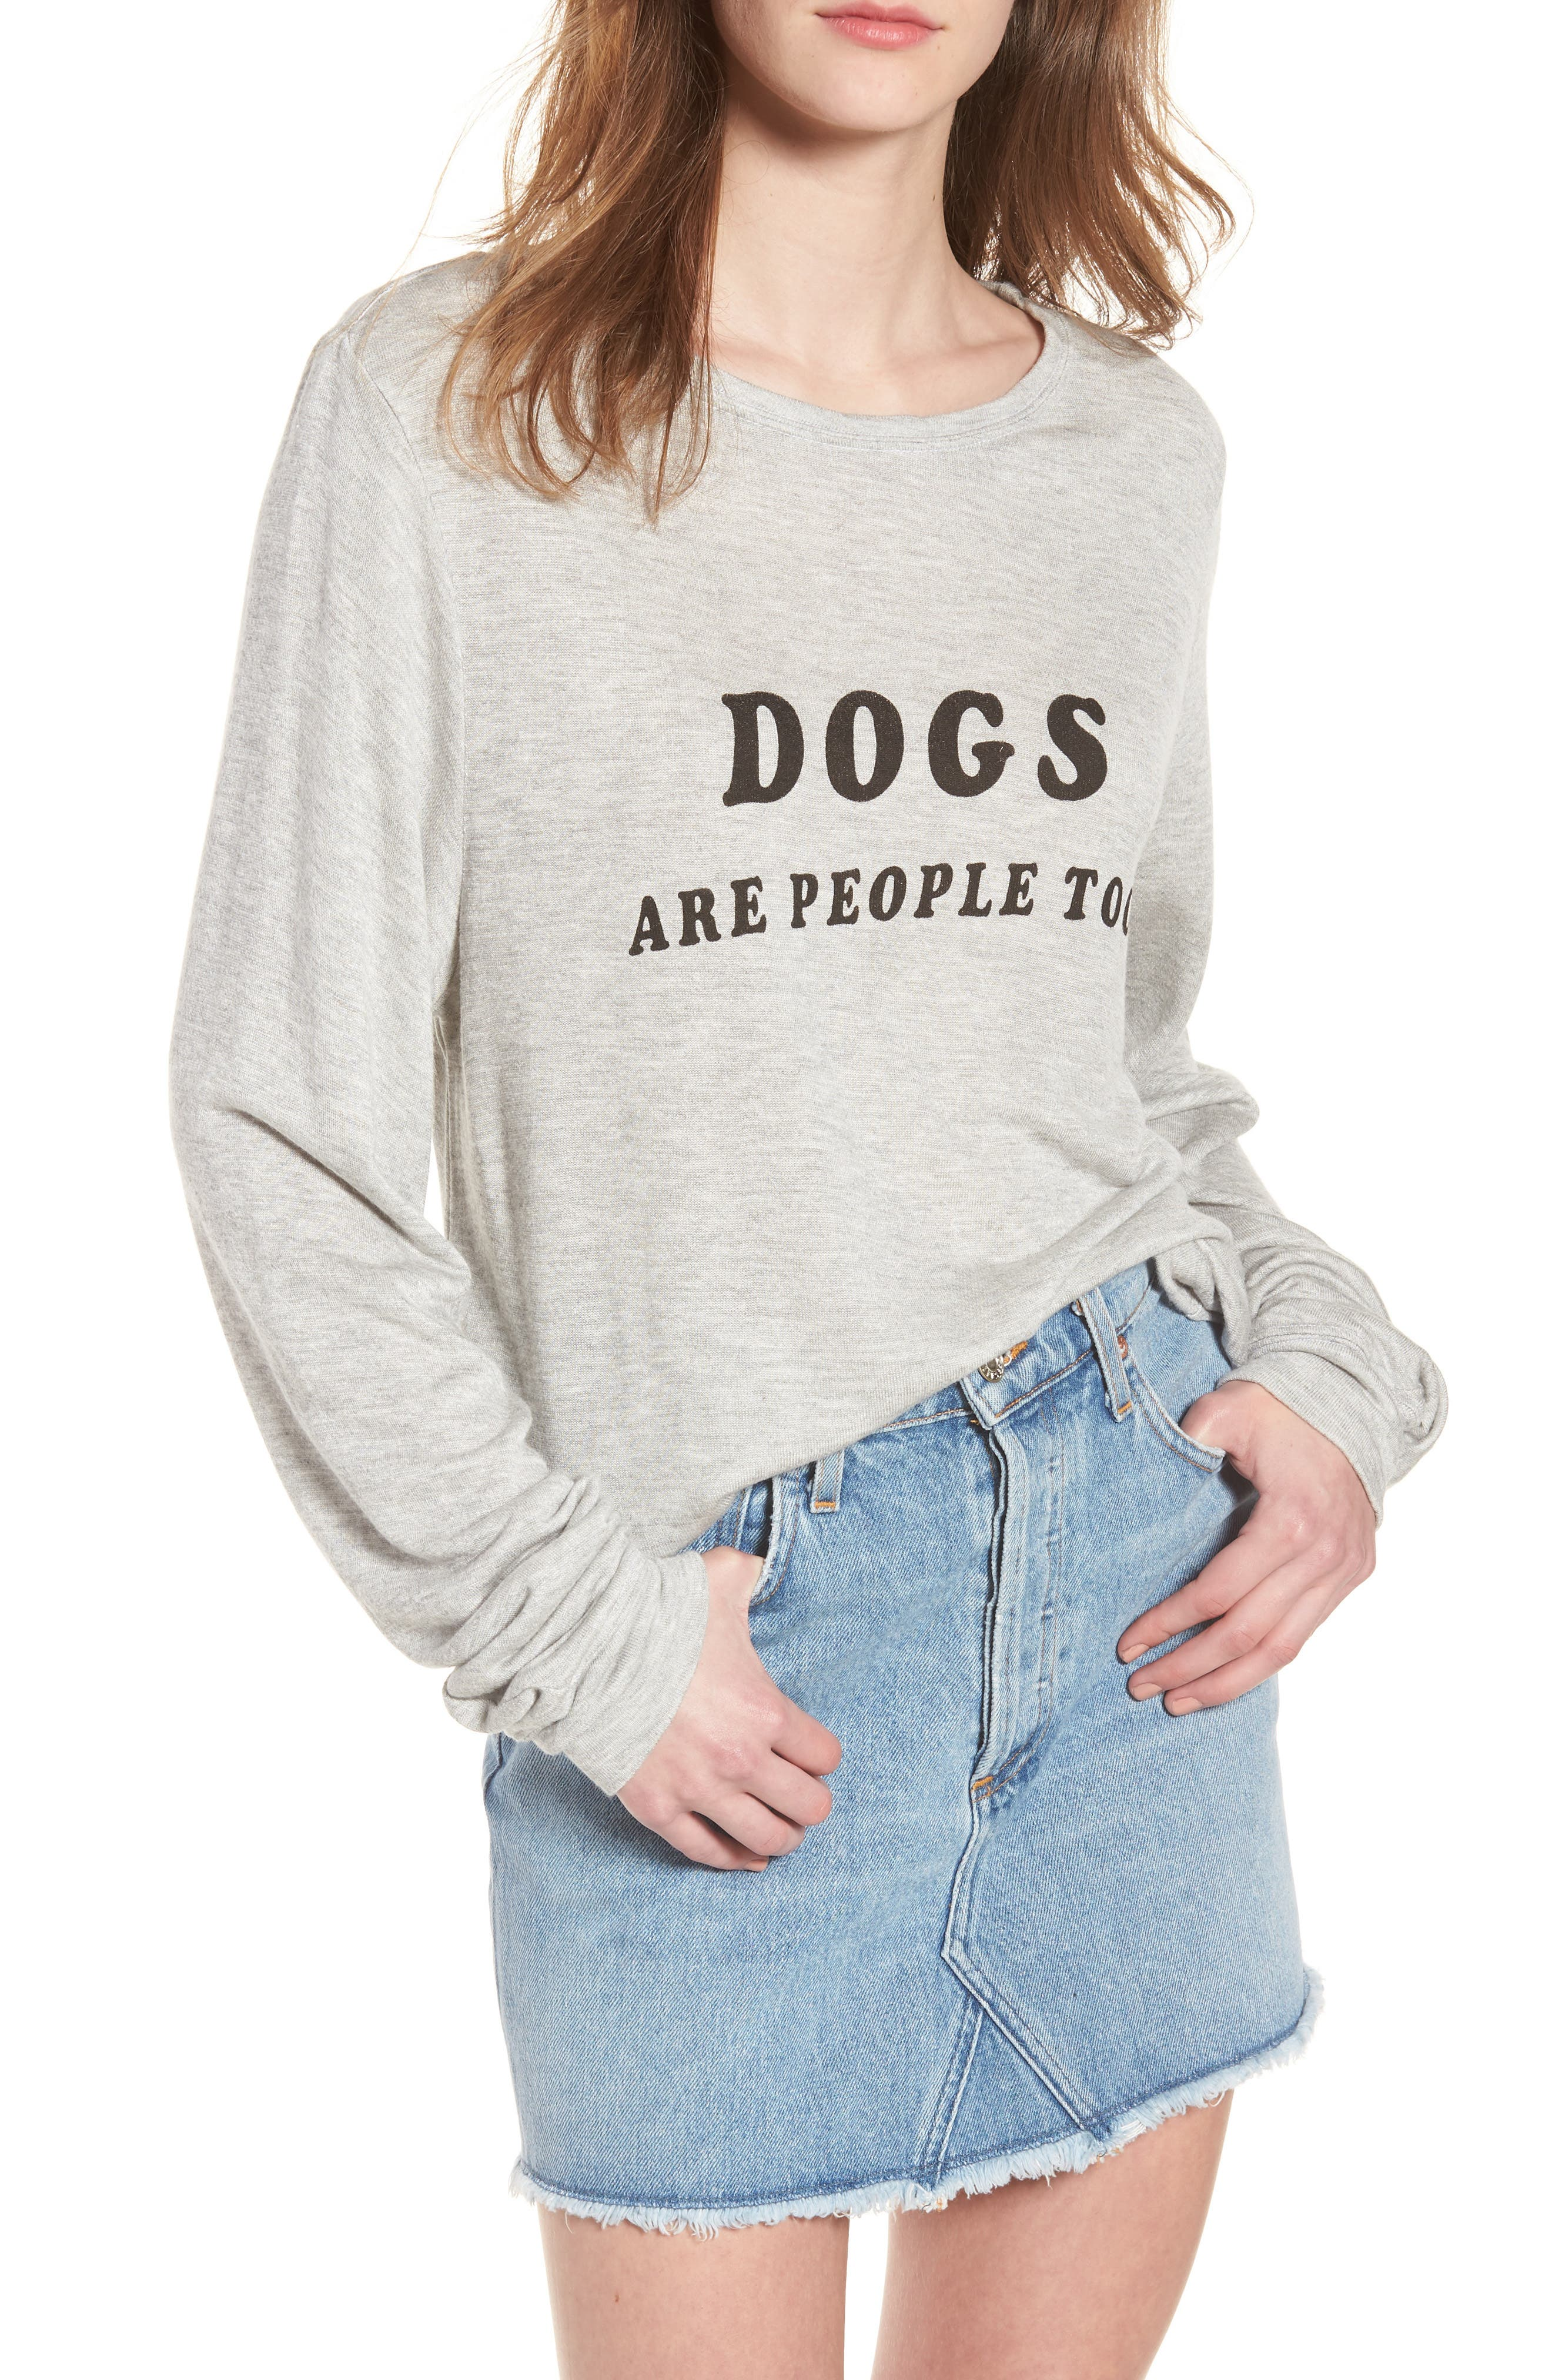 Dogs - Baggy Beach Jumper Pullover,                         Main,                         color, 020